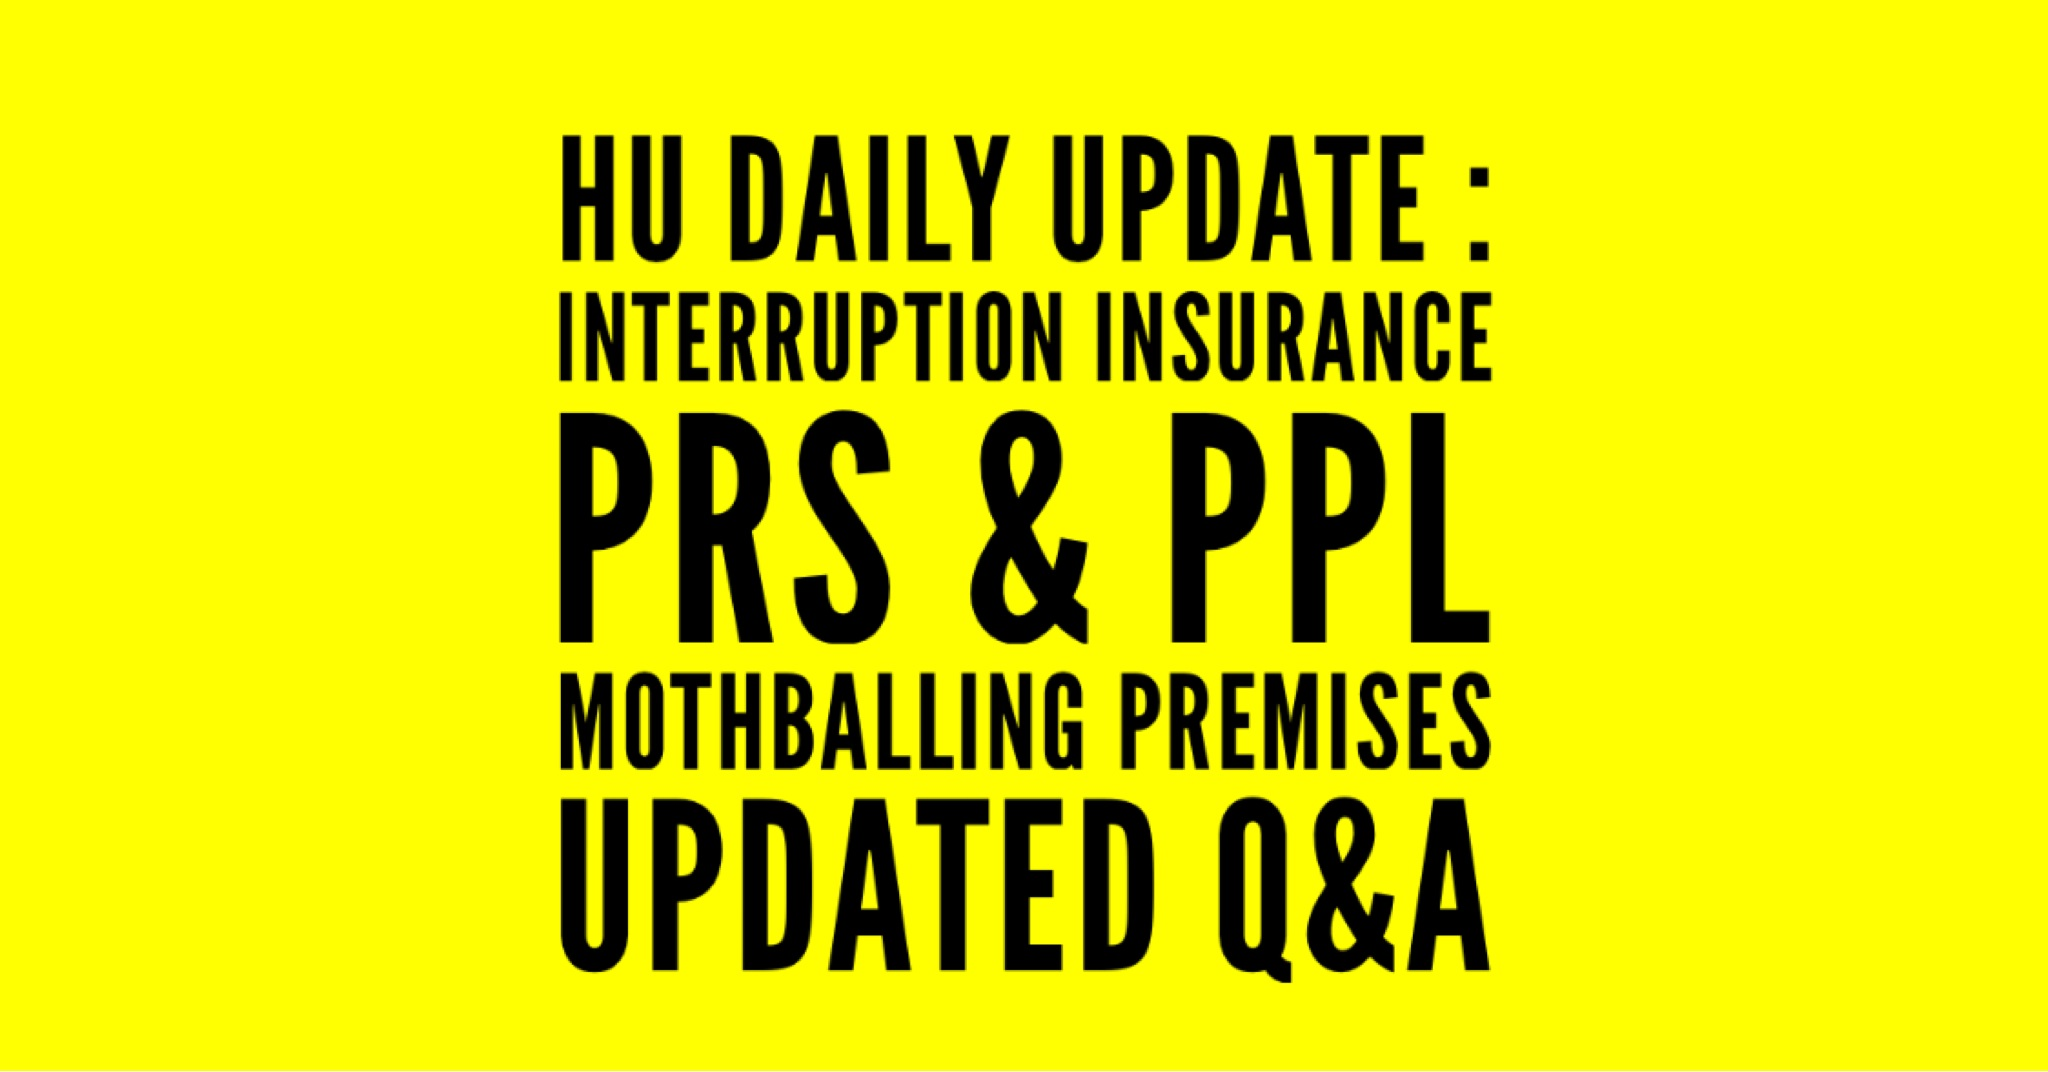 DAILY UPDATE Interruption Insurance PRS and PPL Mothballing Premises Updated Q and A